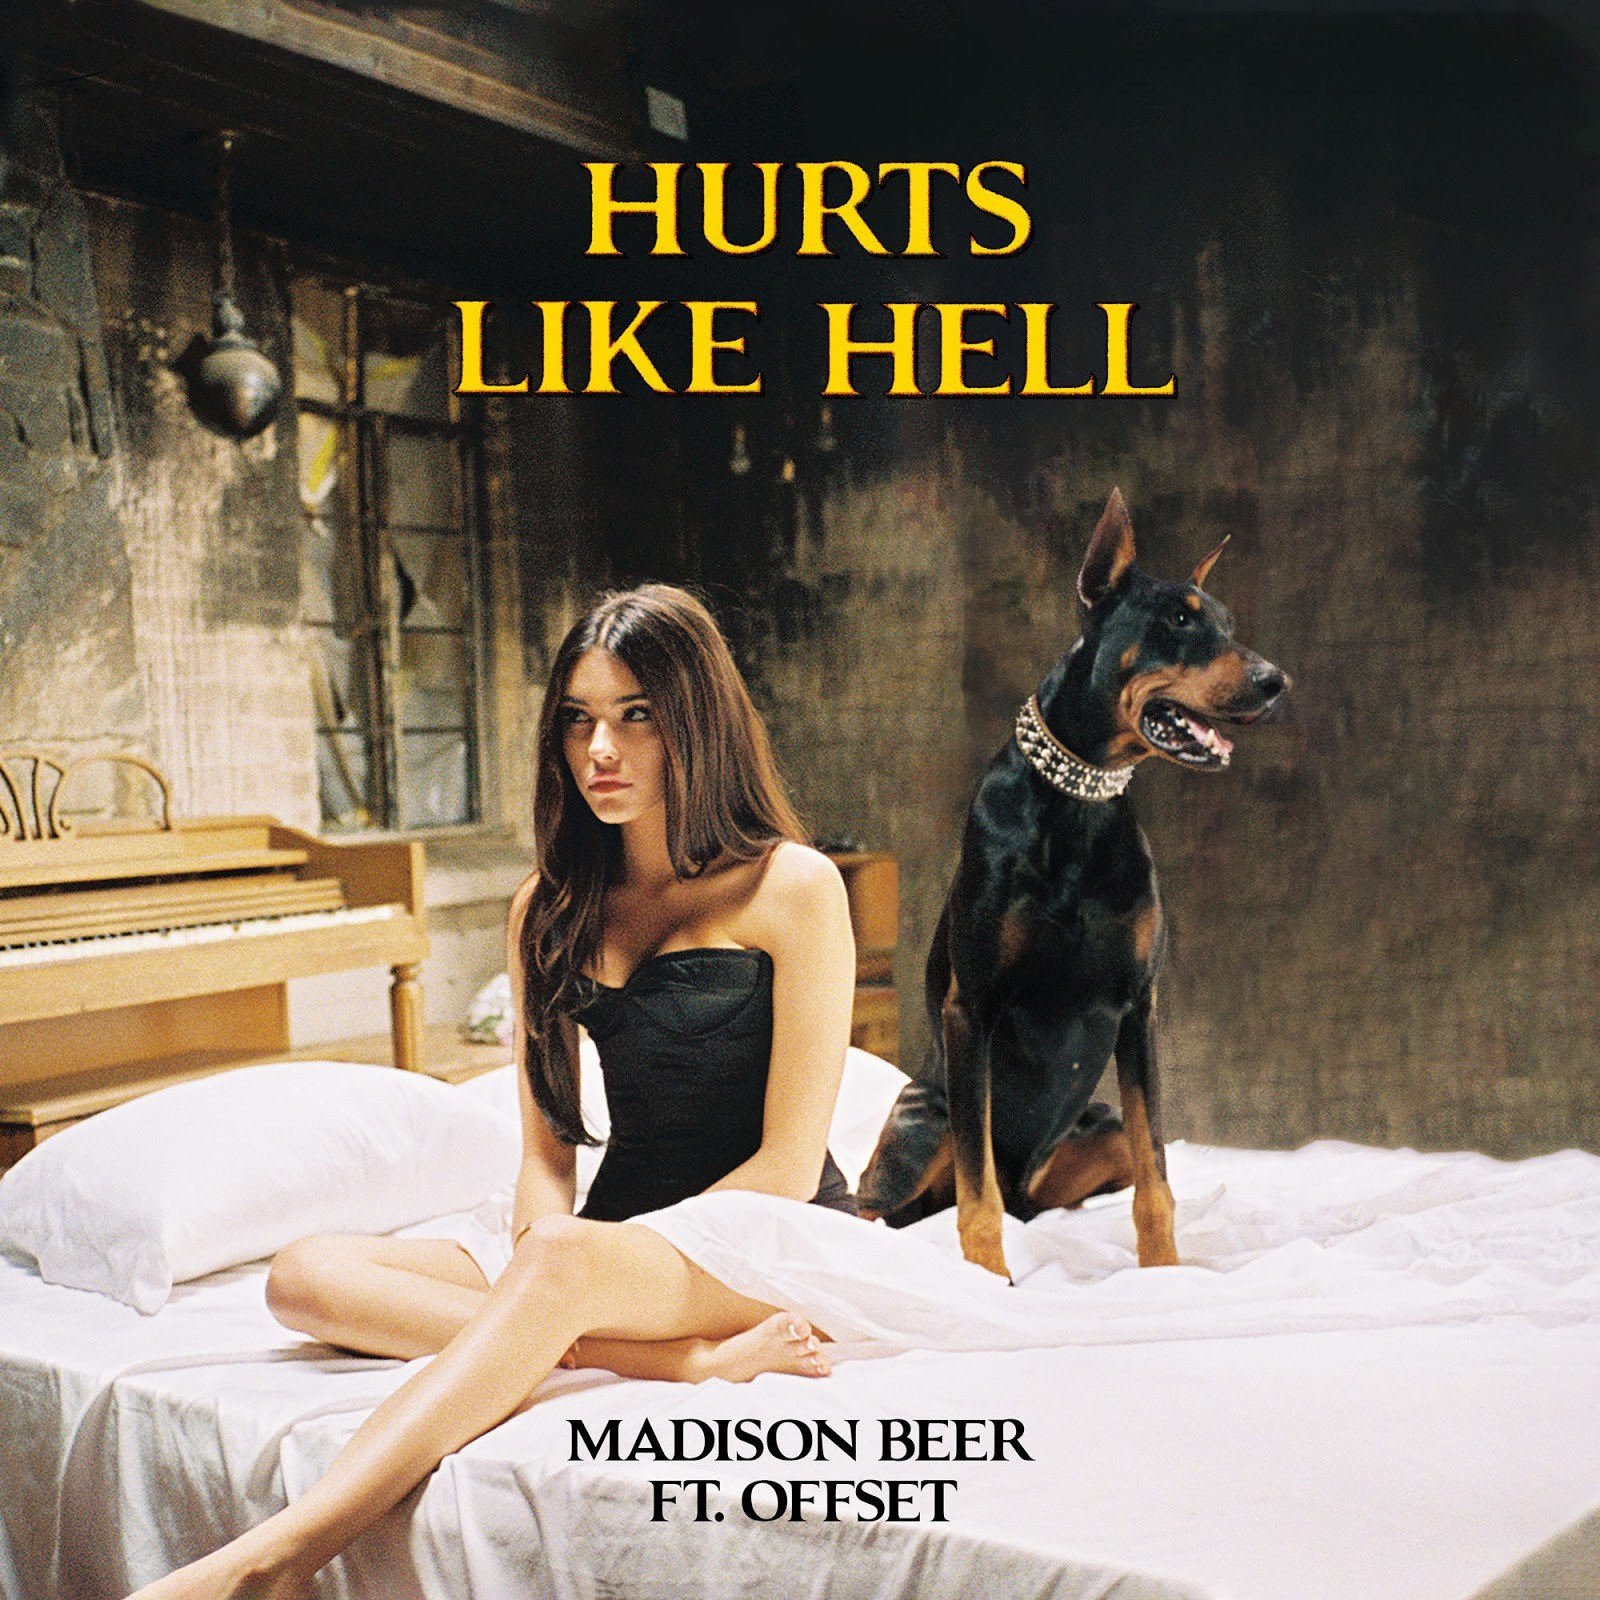 Madison Beer – Hurts Like Hell ft. Offset